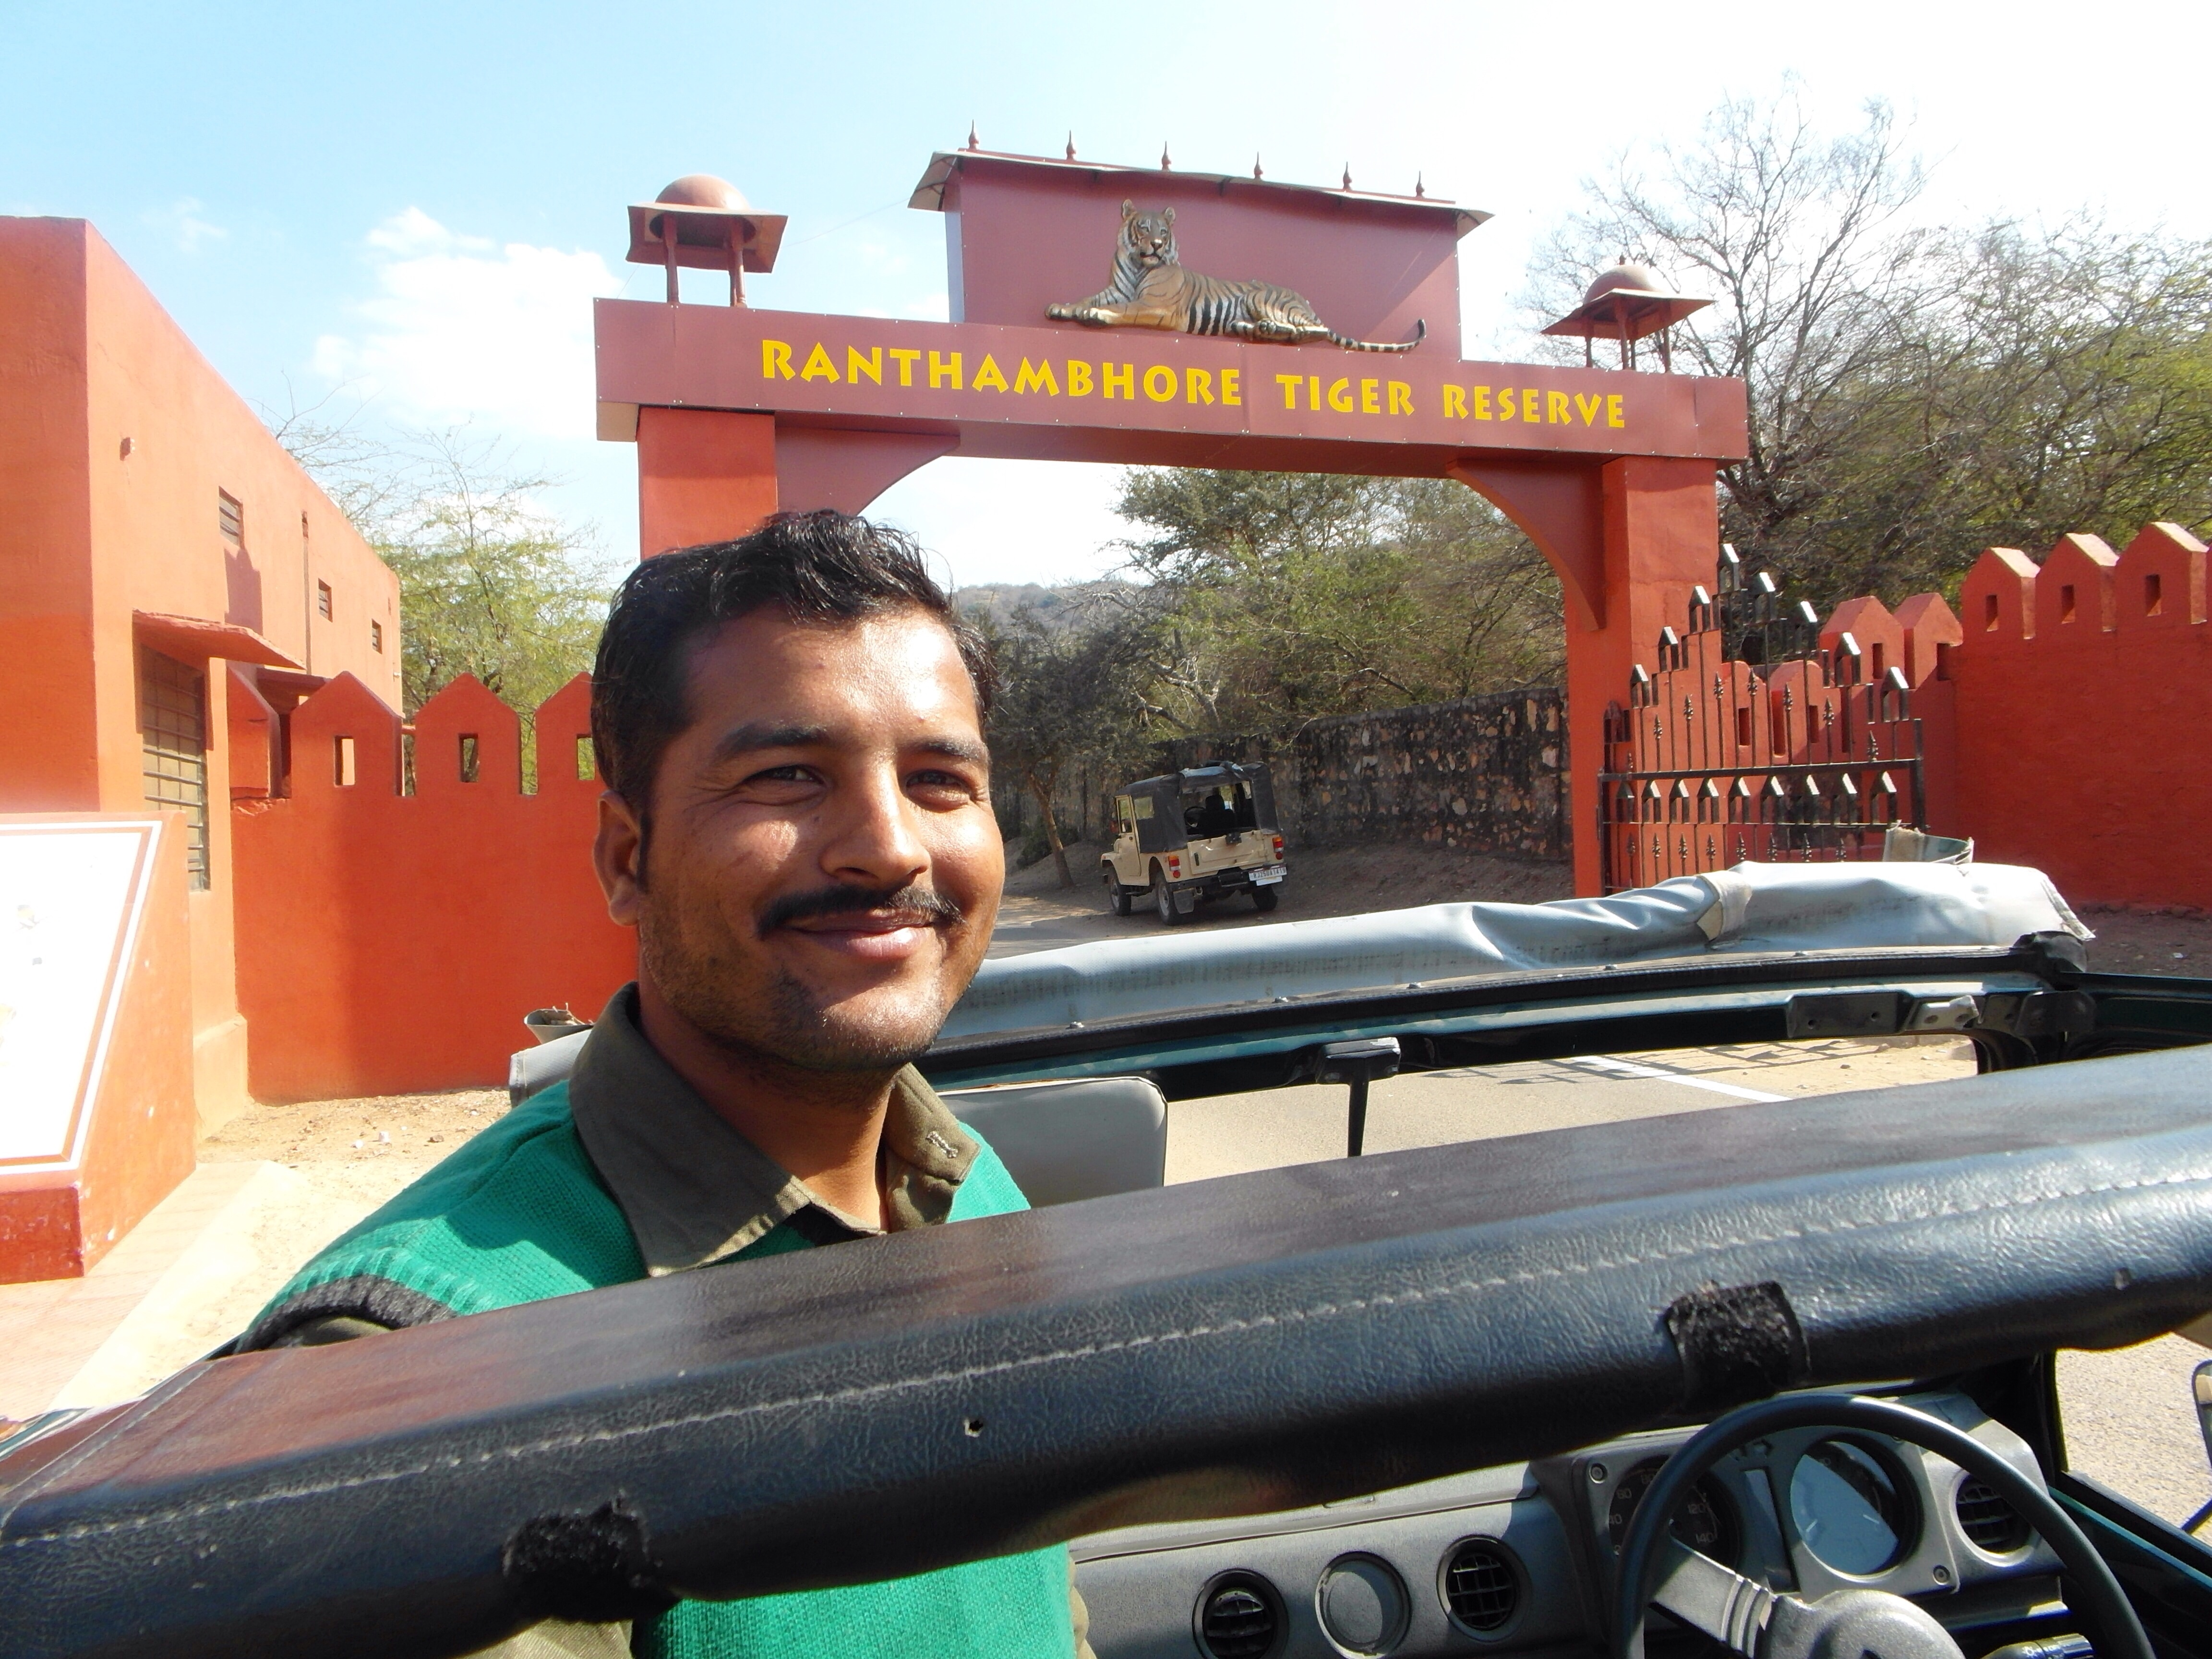 Our guide Battielal at the entrance to Ranthambore Tiger Reserve